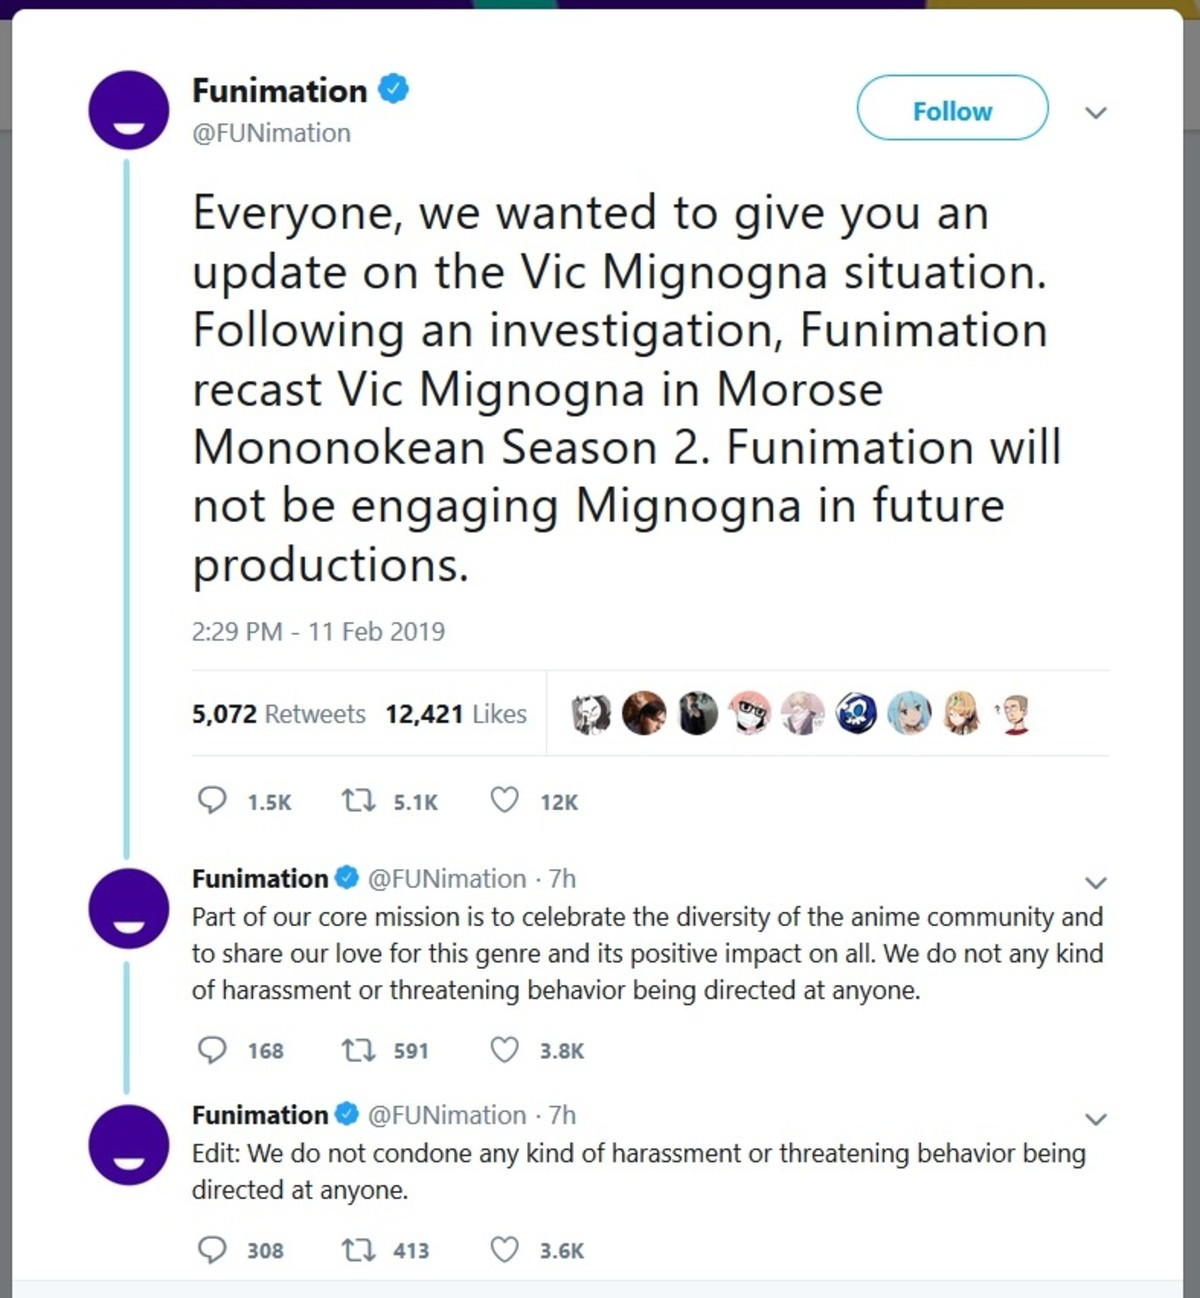 Funimation and Vic Migna. whichever side you believe, it is safe to say that his career is over.. So false allegations of rape are not considered a form of harassment? This timeline, mate........